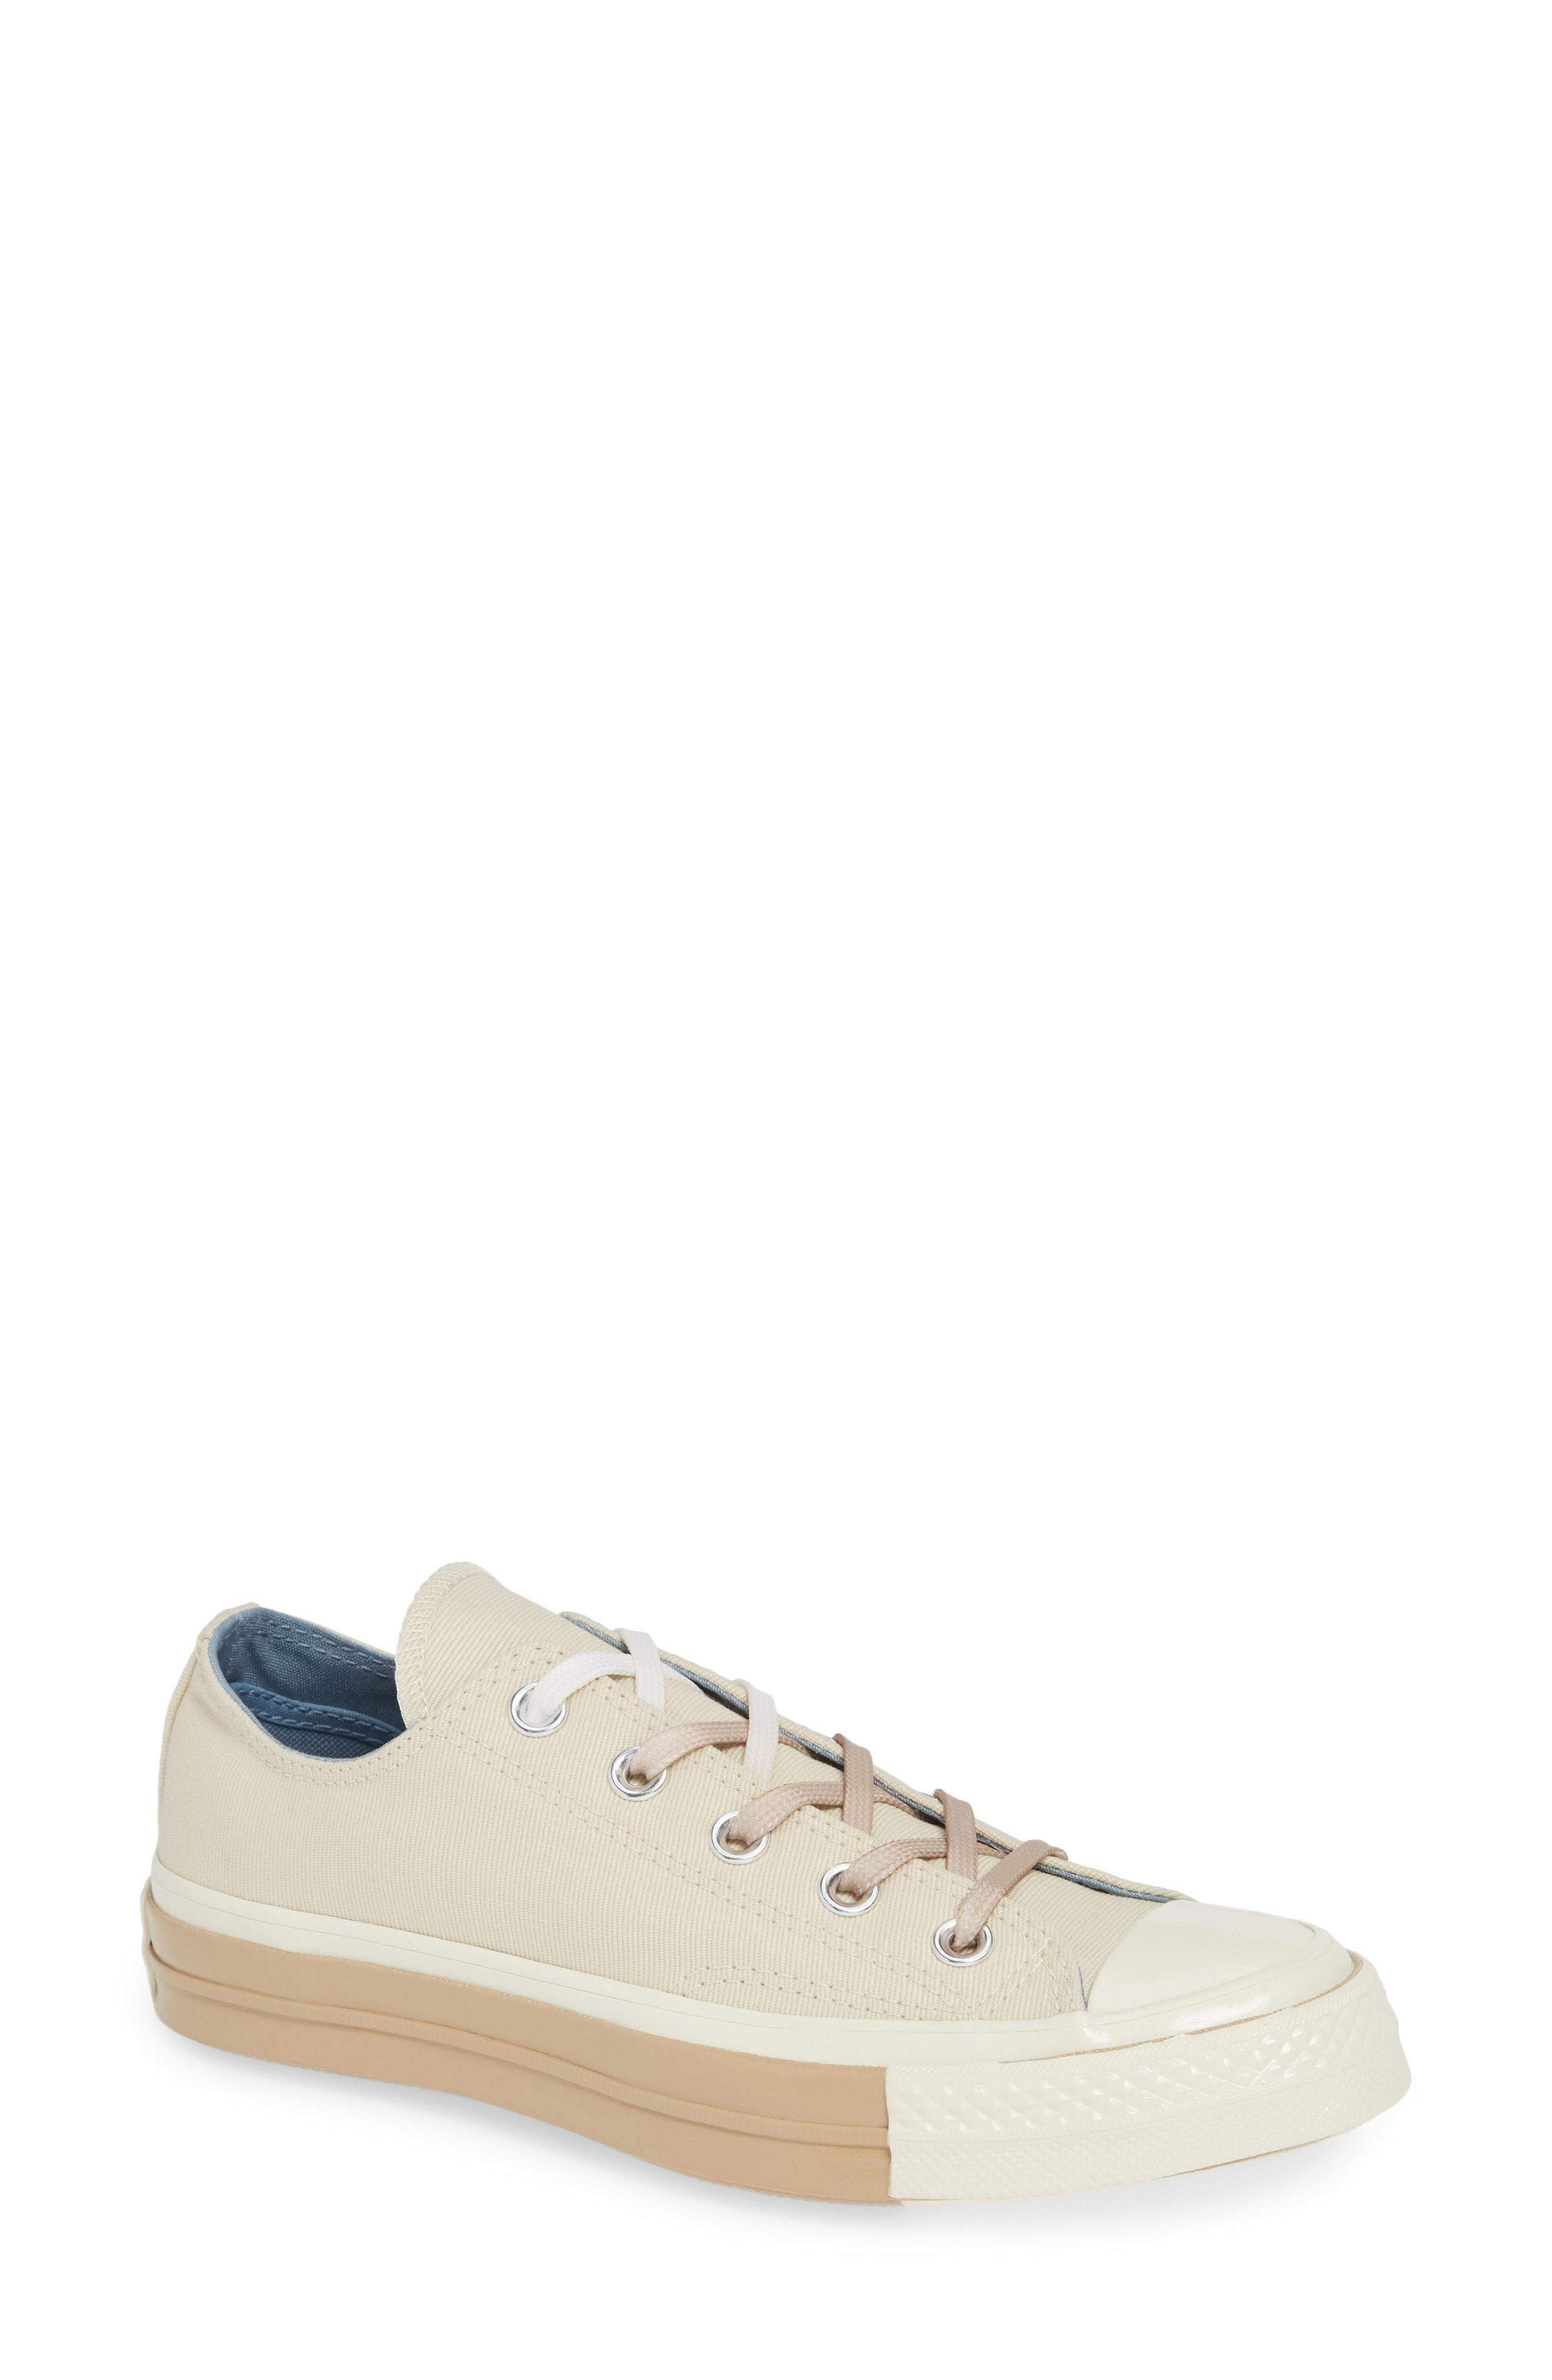 b34ab3ba308 Lyst - Converse Chuck Taylor All Star 70 Colorblock Low Top Sneaker